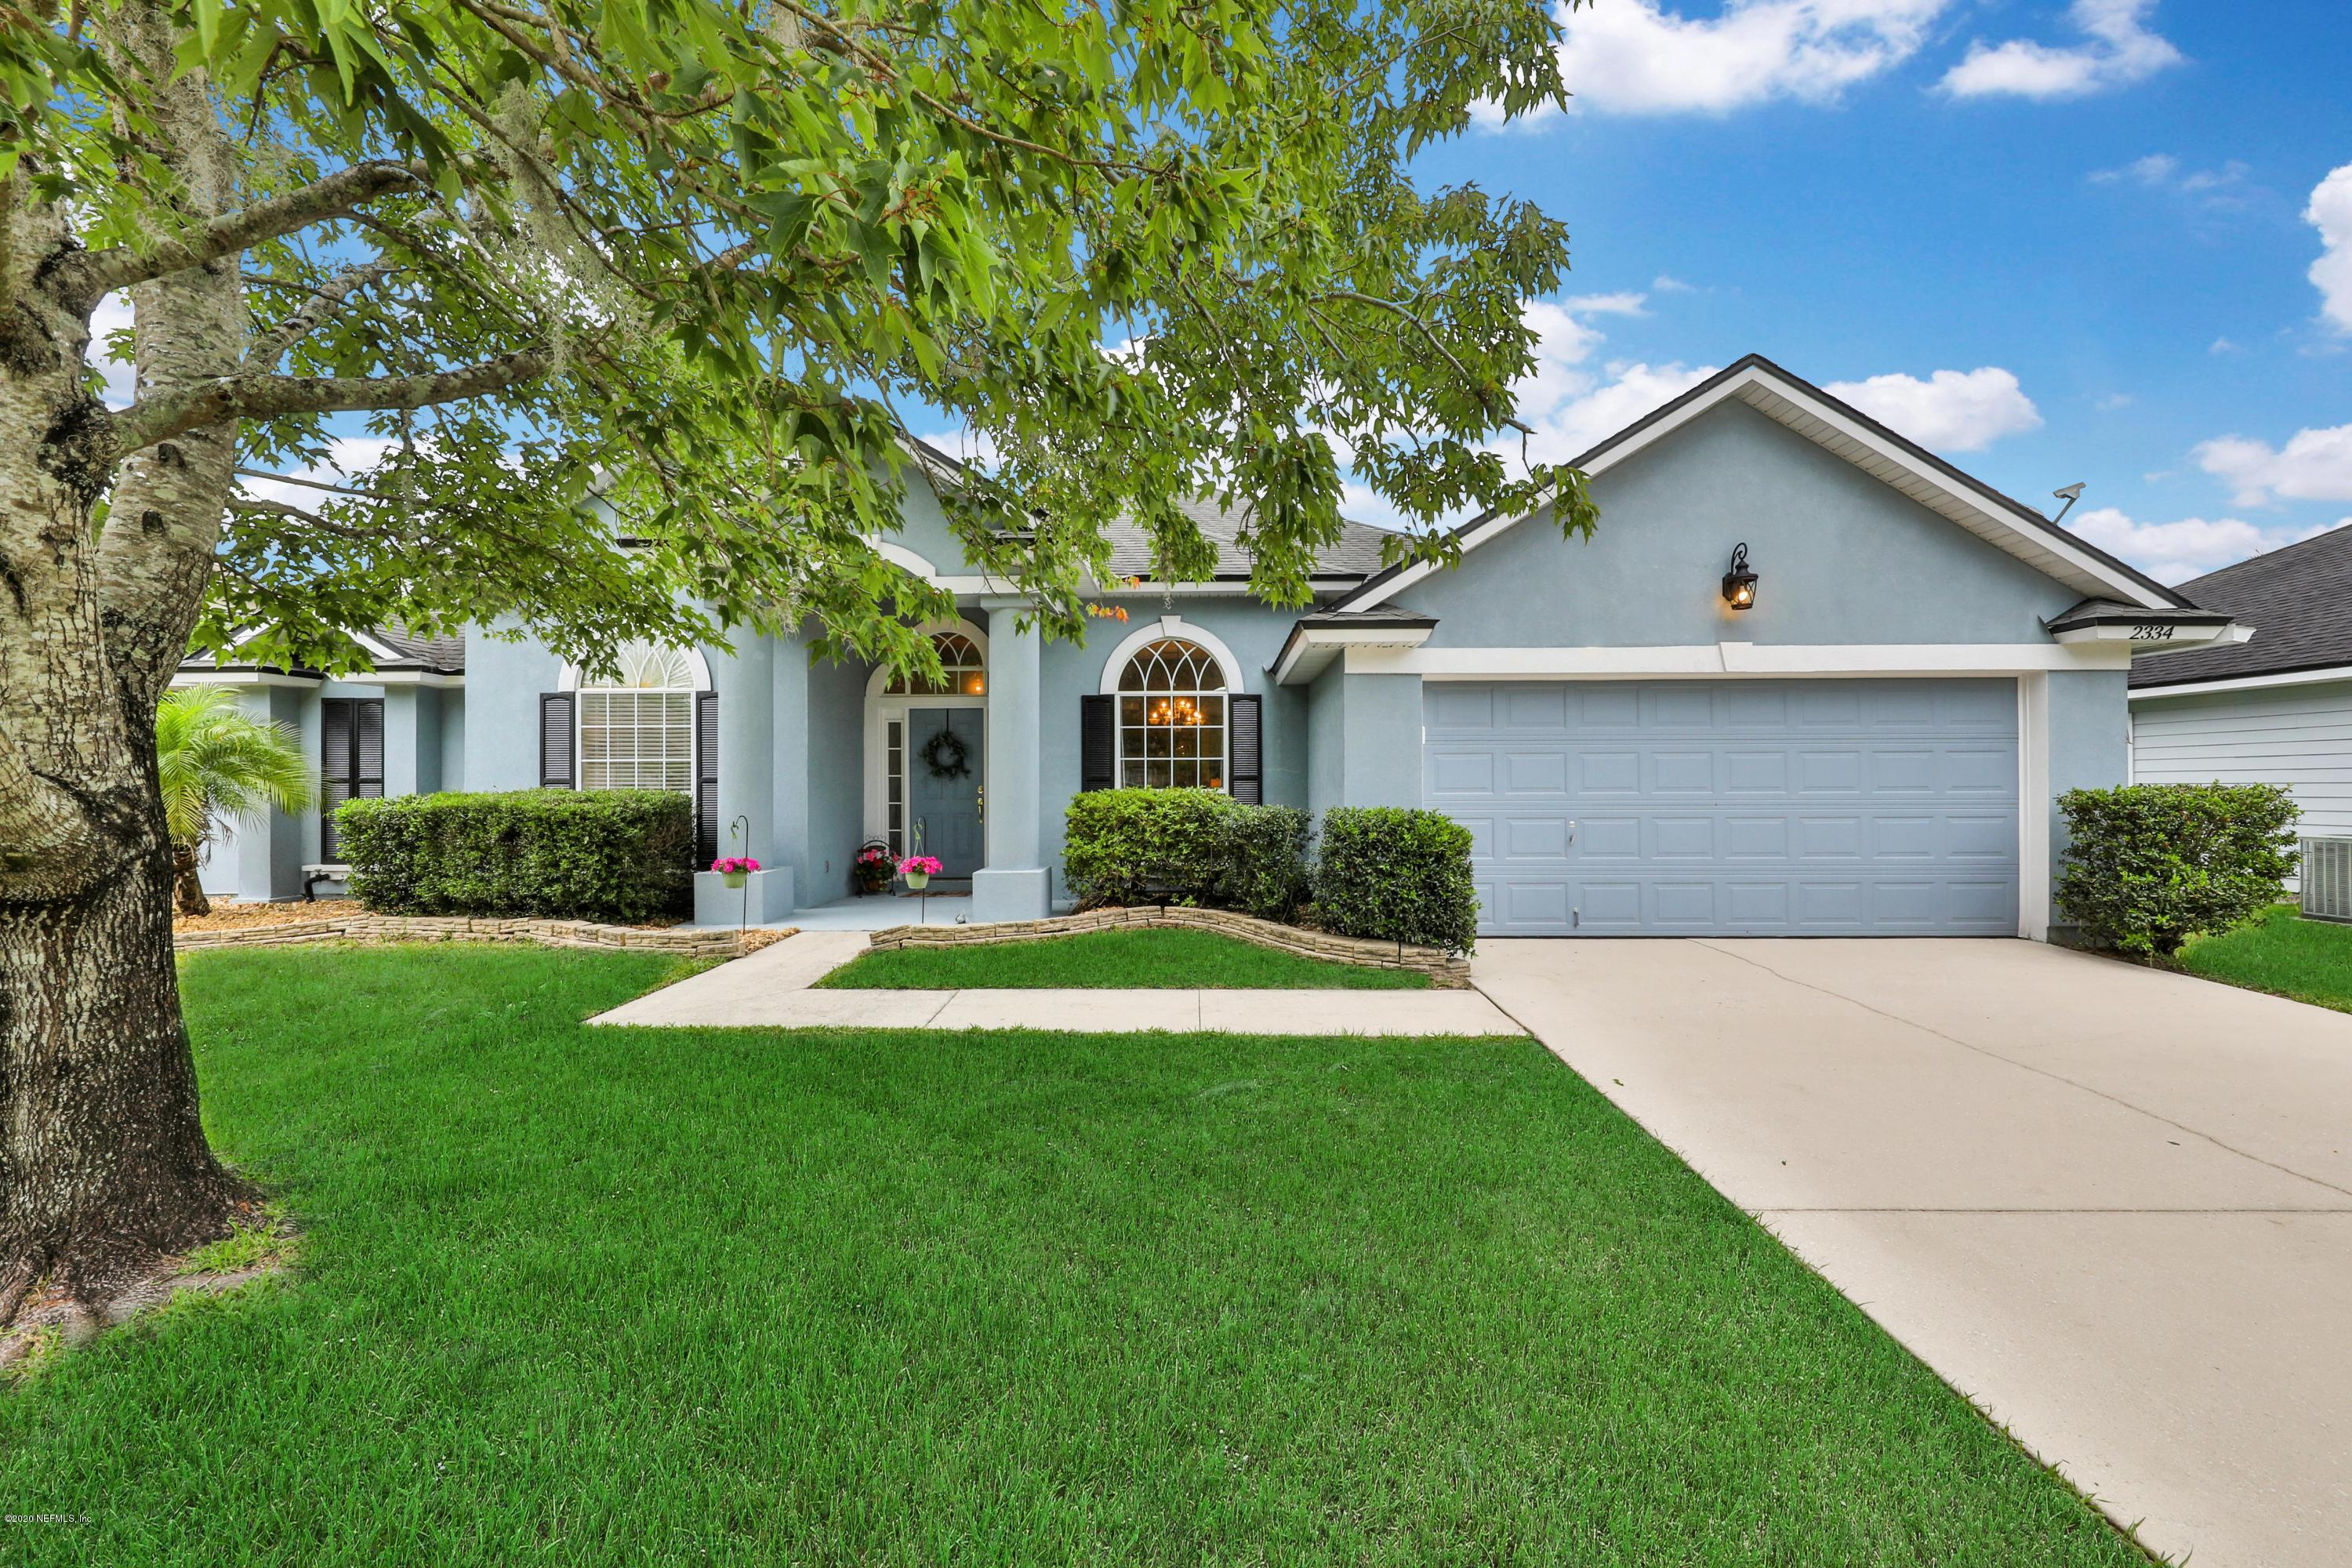 2334 OAK POINT, MIDDLEBURG, FLORIDA 32068, 4 Bedrooms Bedrooms, ,3 BathroomsBathrooms,Residential,For sale,OAK POINT,1052373